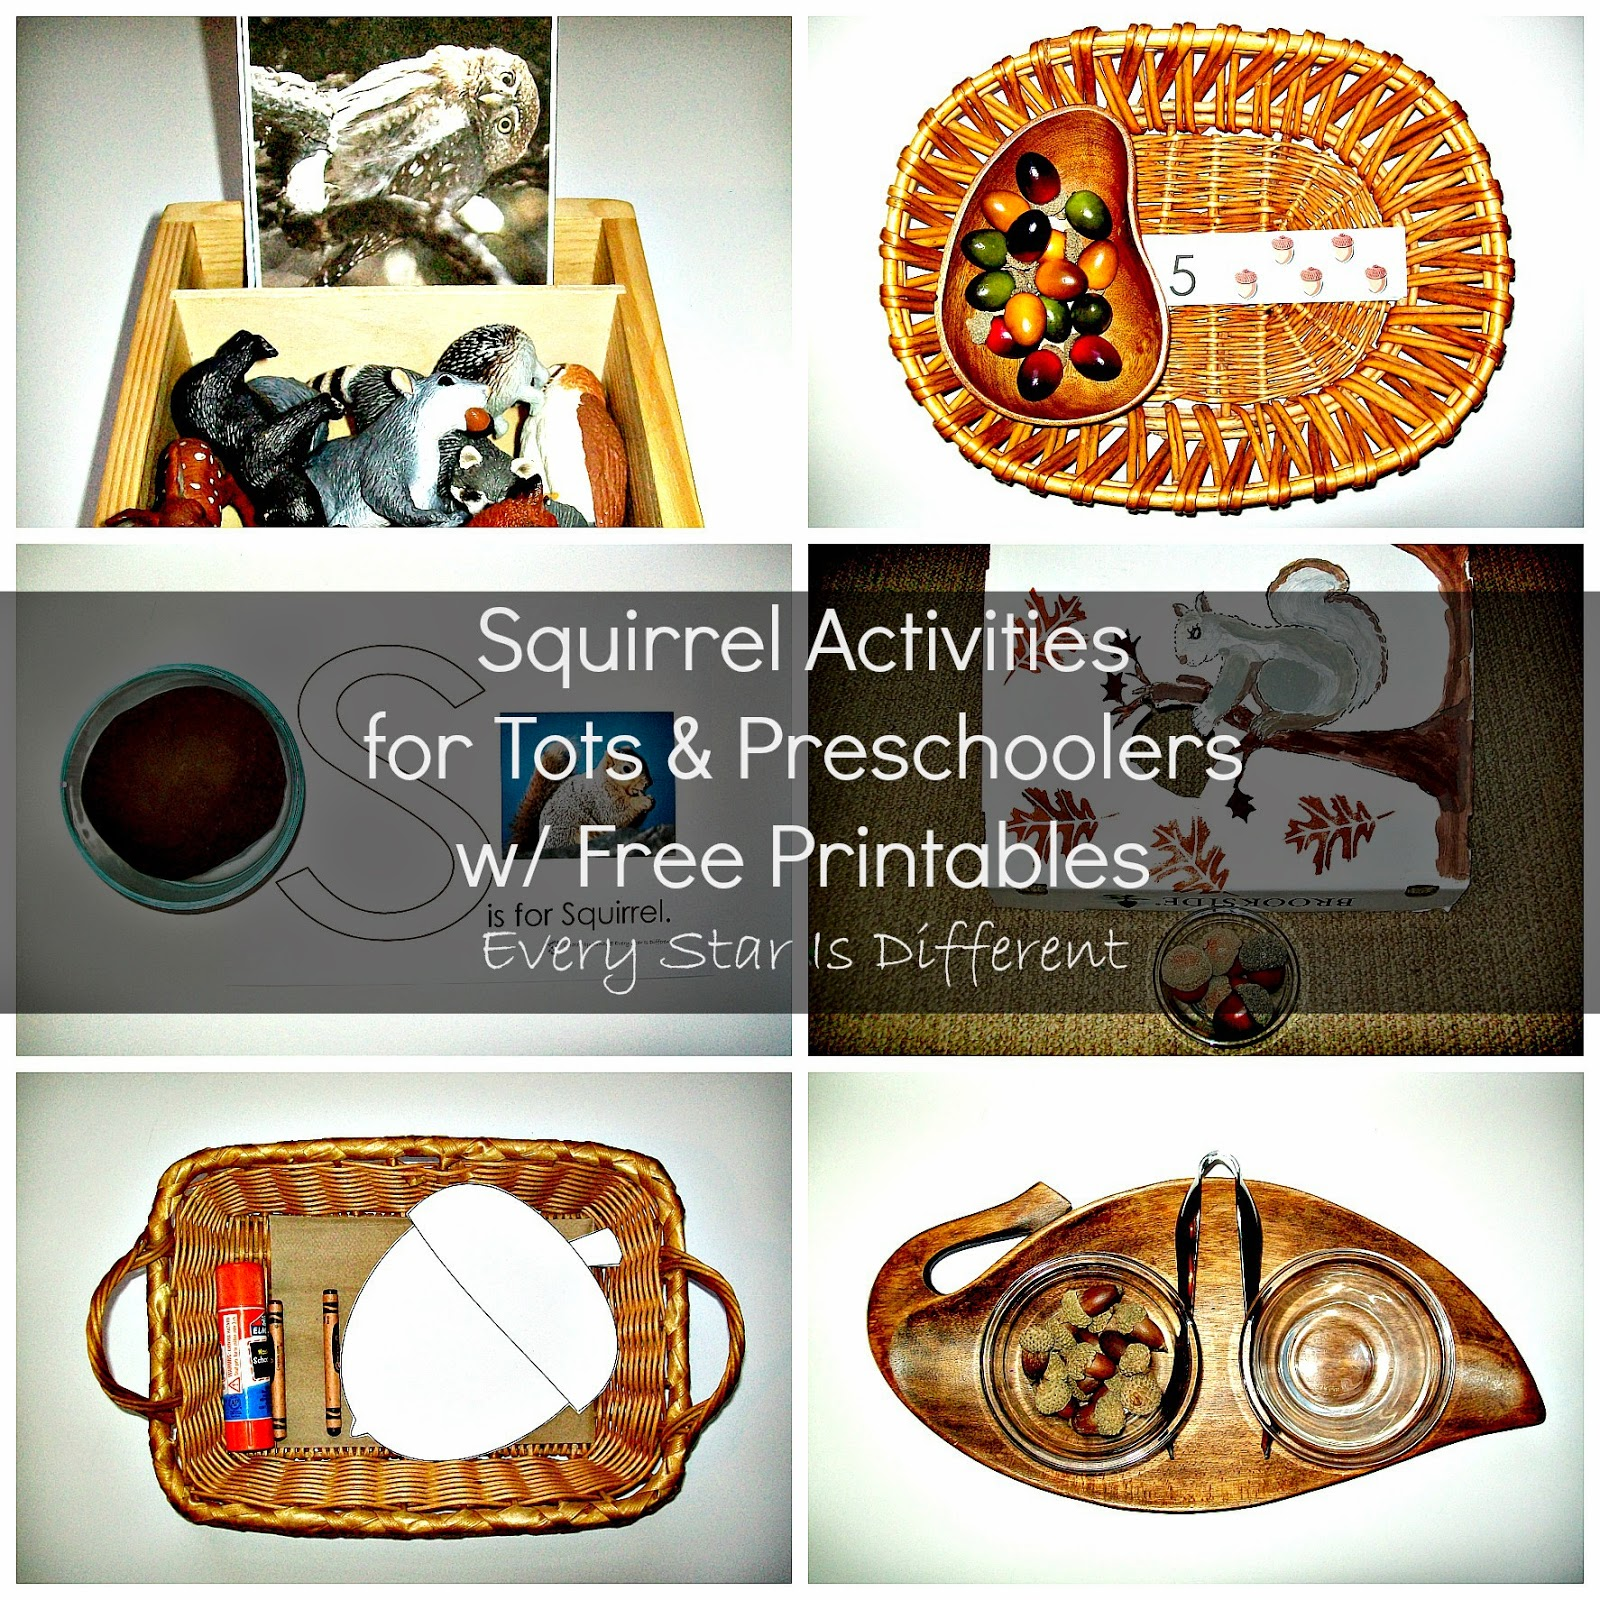 Squirrel Activities for Tots & Preschoolers